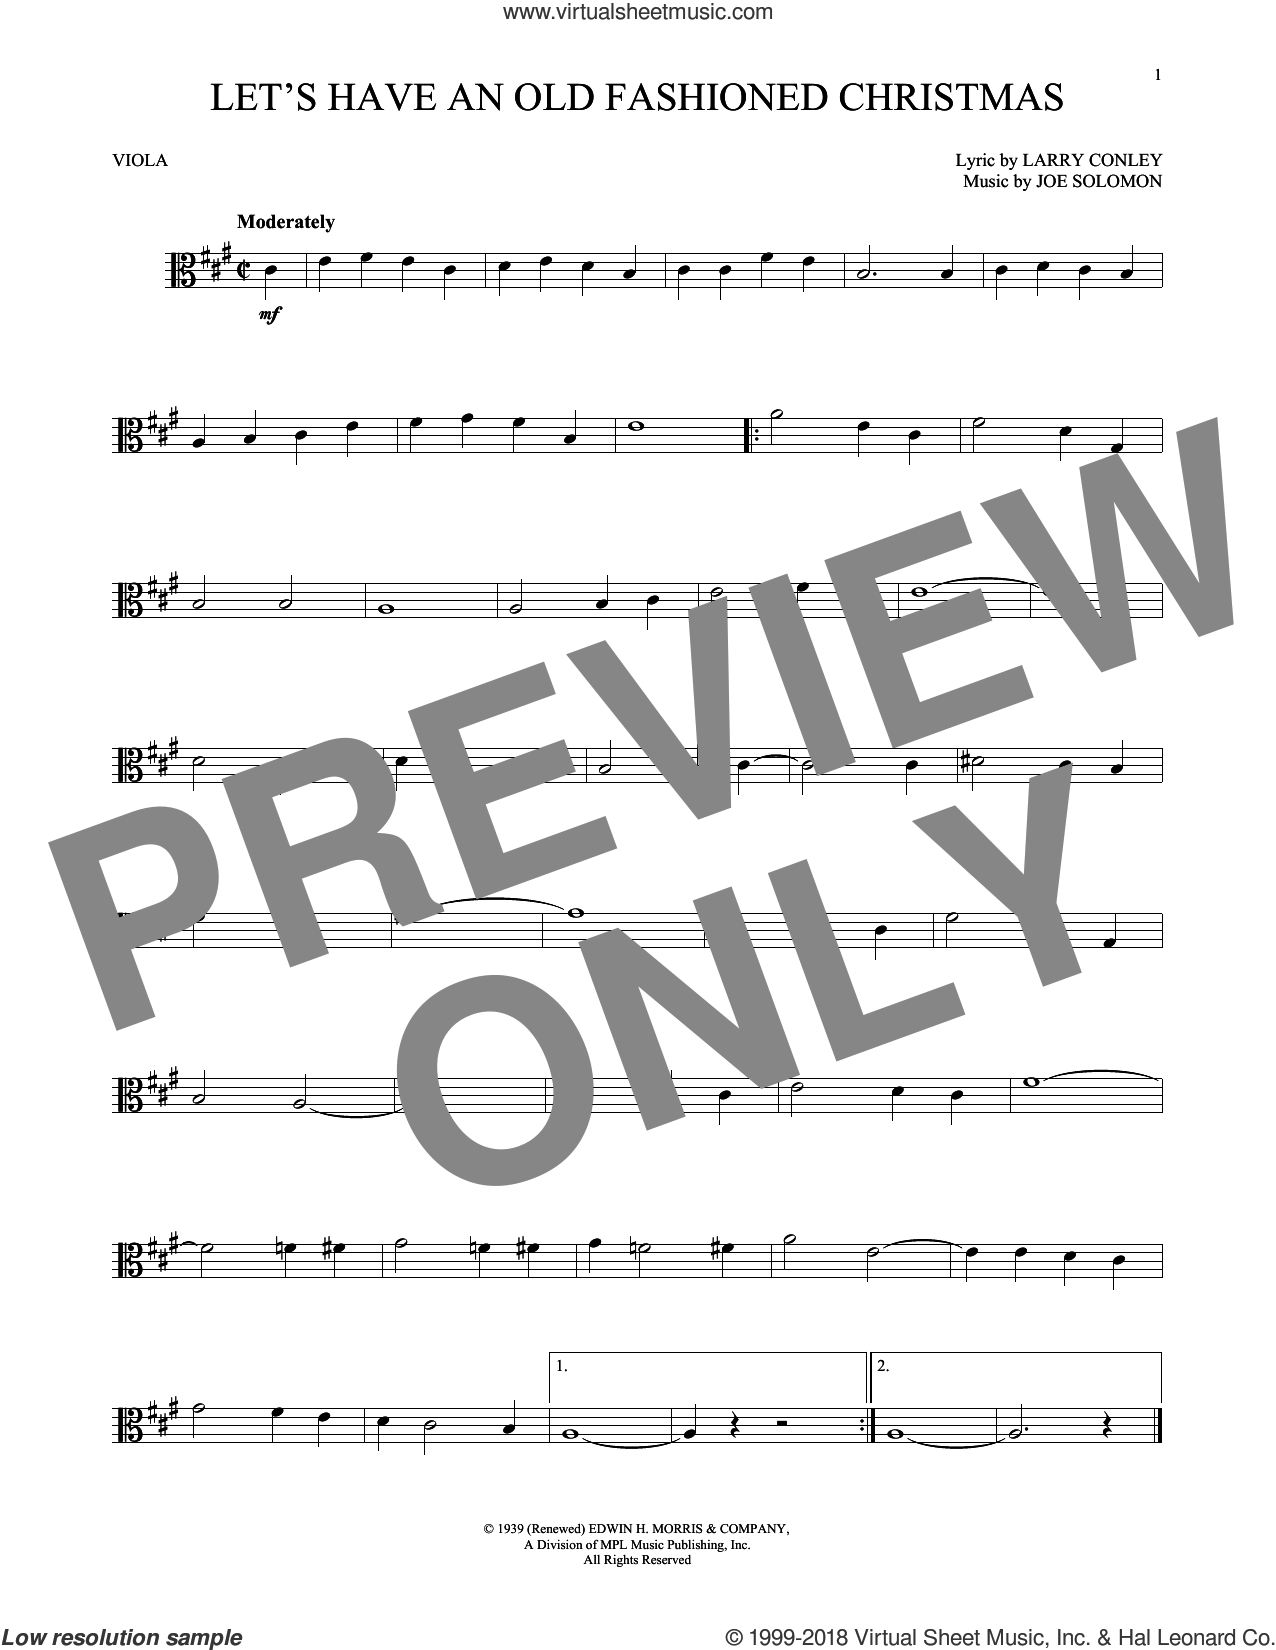 Let's Have An Old Fashioned Christmas sheet music for viola solo by Larry Conley and Joe Solomon, intermediate skill level